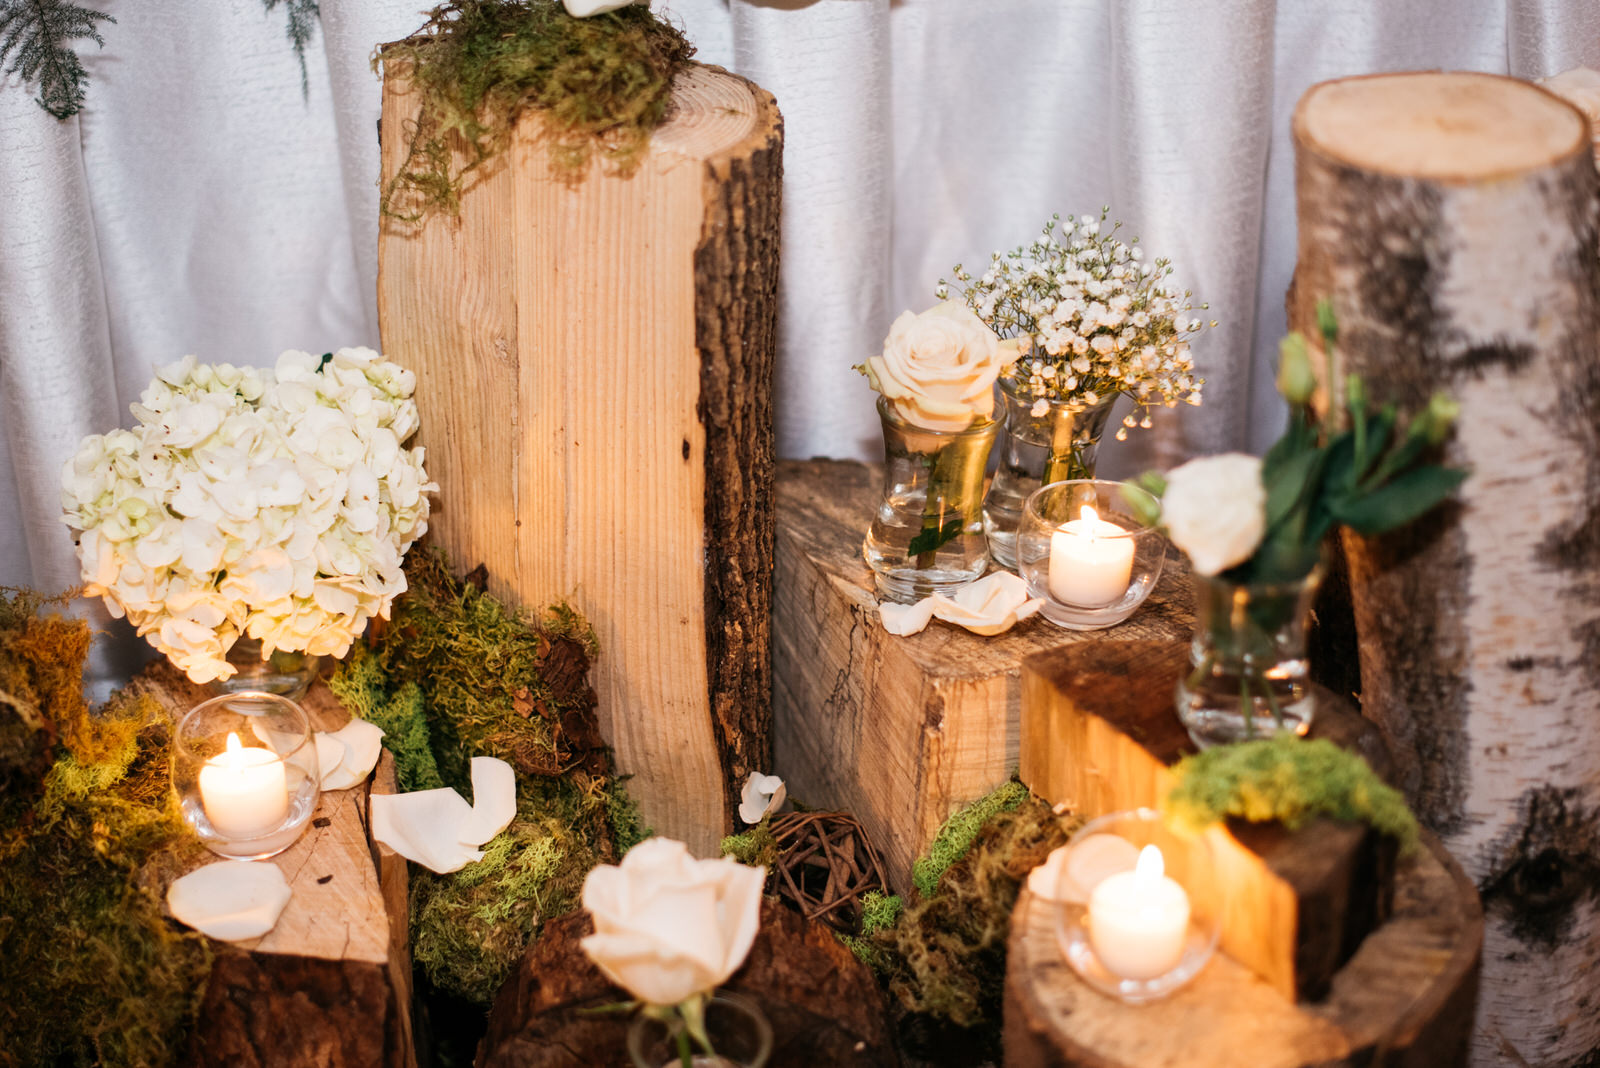 hilton_garden_inn_southpointe_pittsburgh_weddings_86.jpg